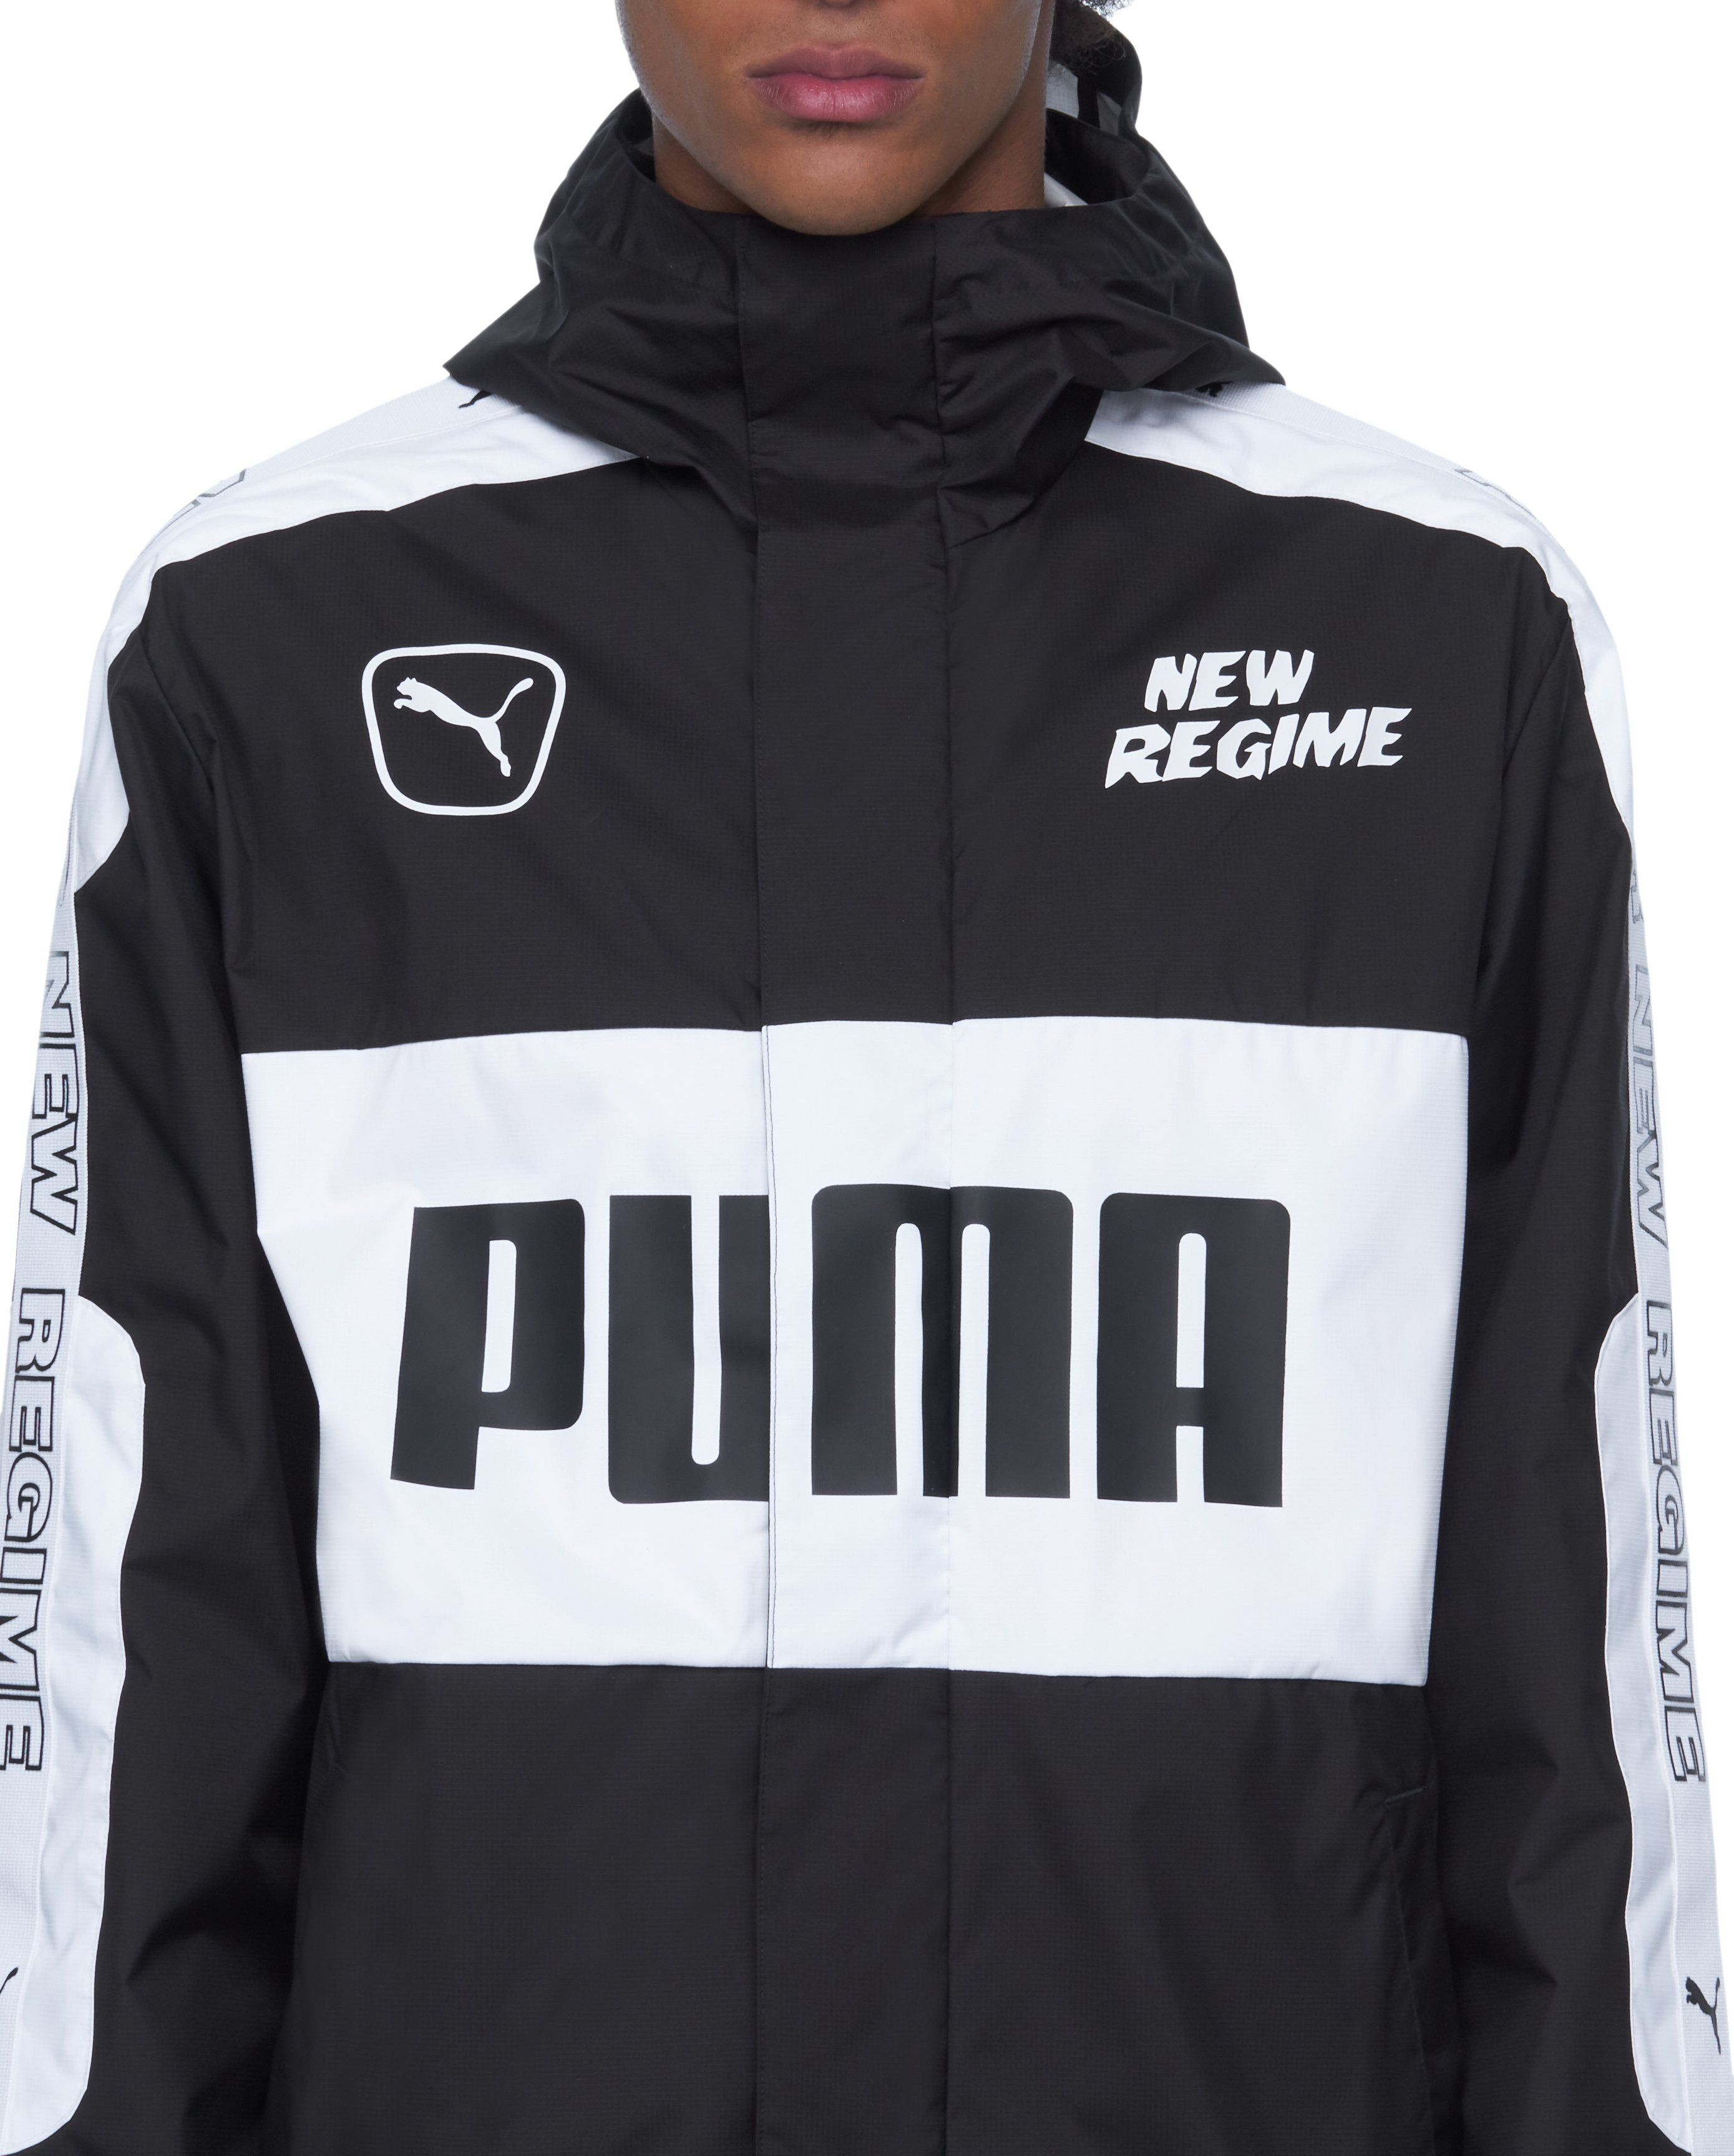 374de250168b1 Puma x ANR Jacket / Made of a water-repellant shell, this PUMA x ANR  lightweight windbreaker jacket features motorsport-inspired oversized  printed logos and ...